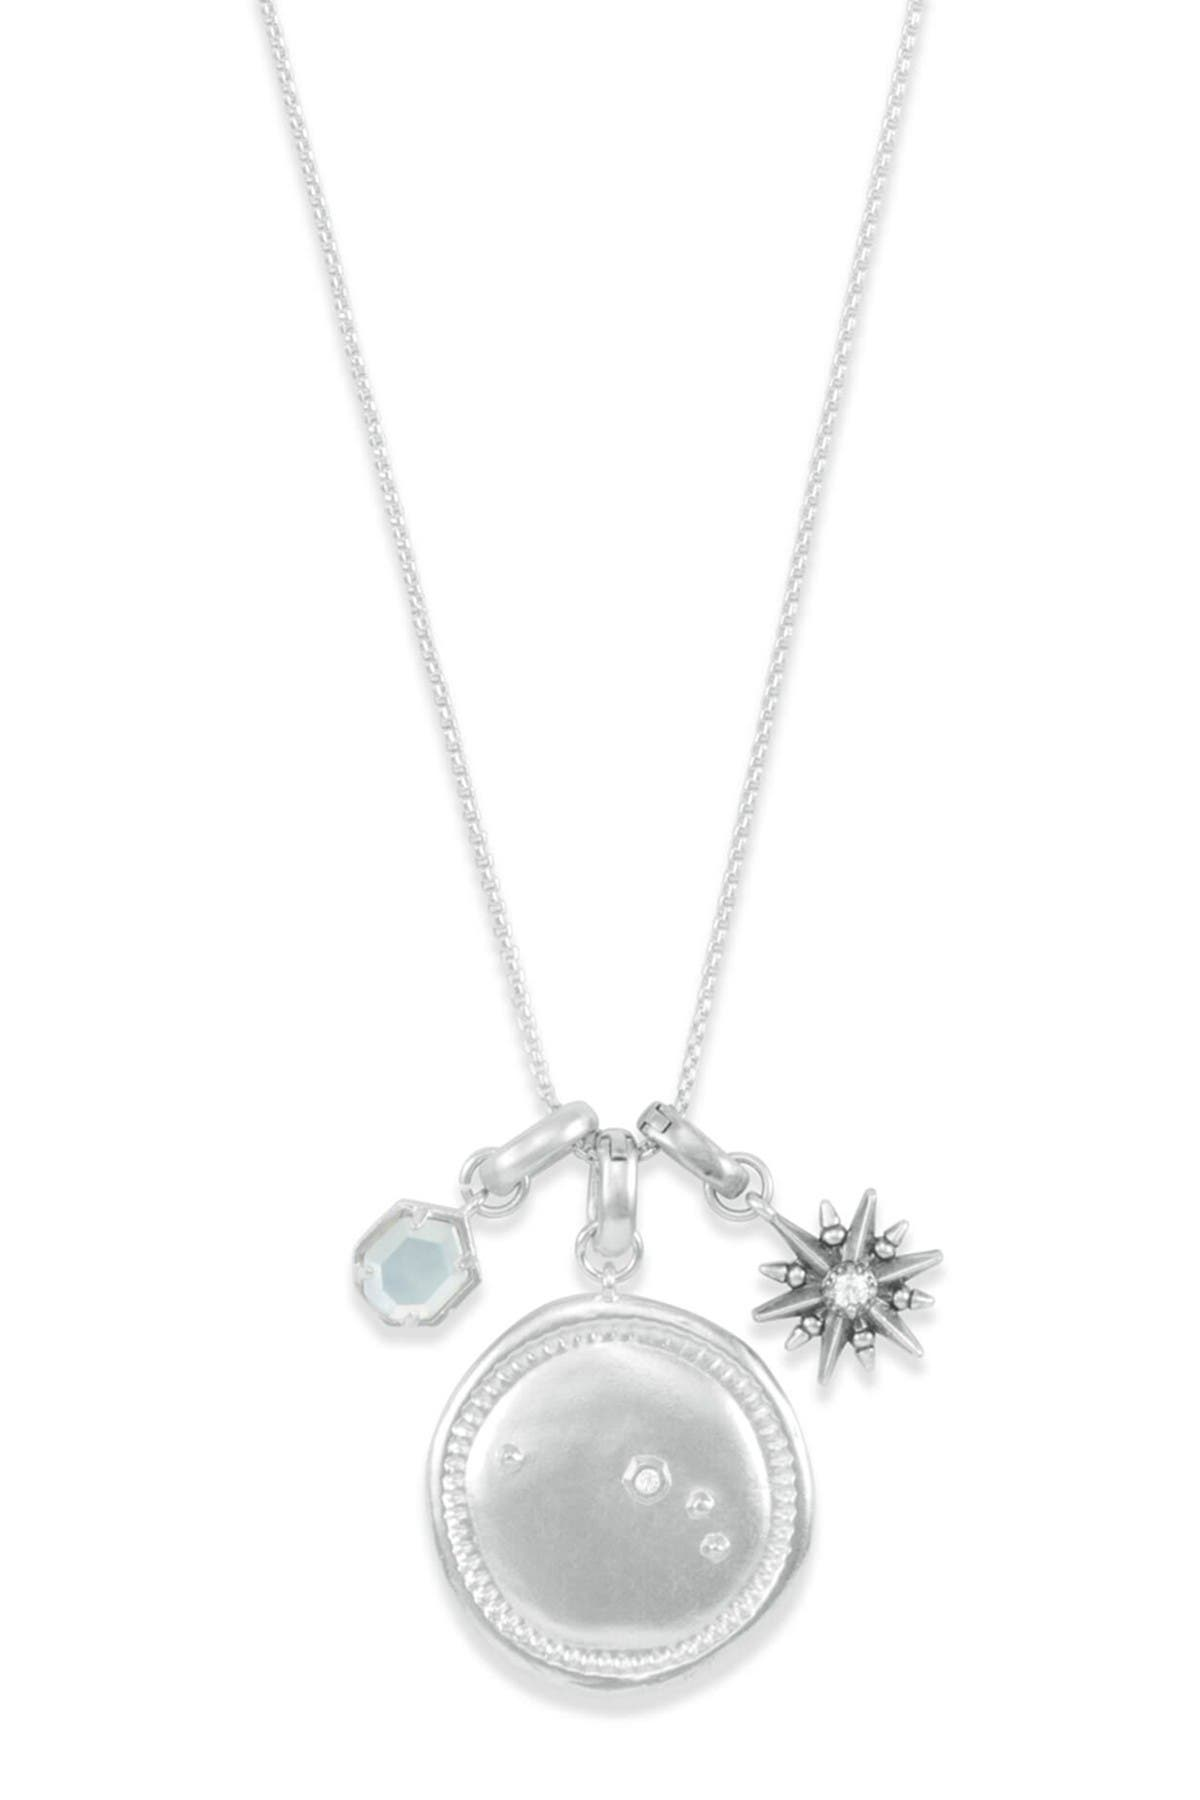 Image of Kendra Scott Rhodium Plated Aries Charm Necklace